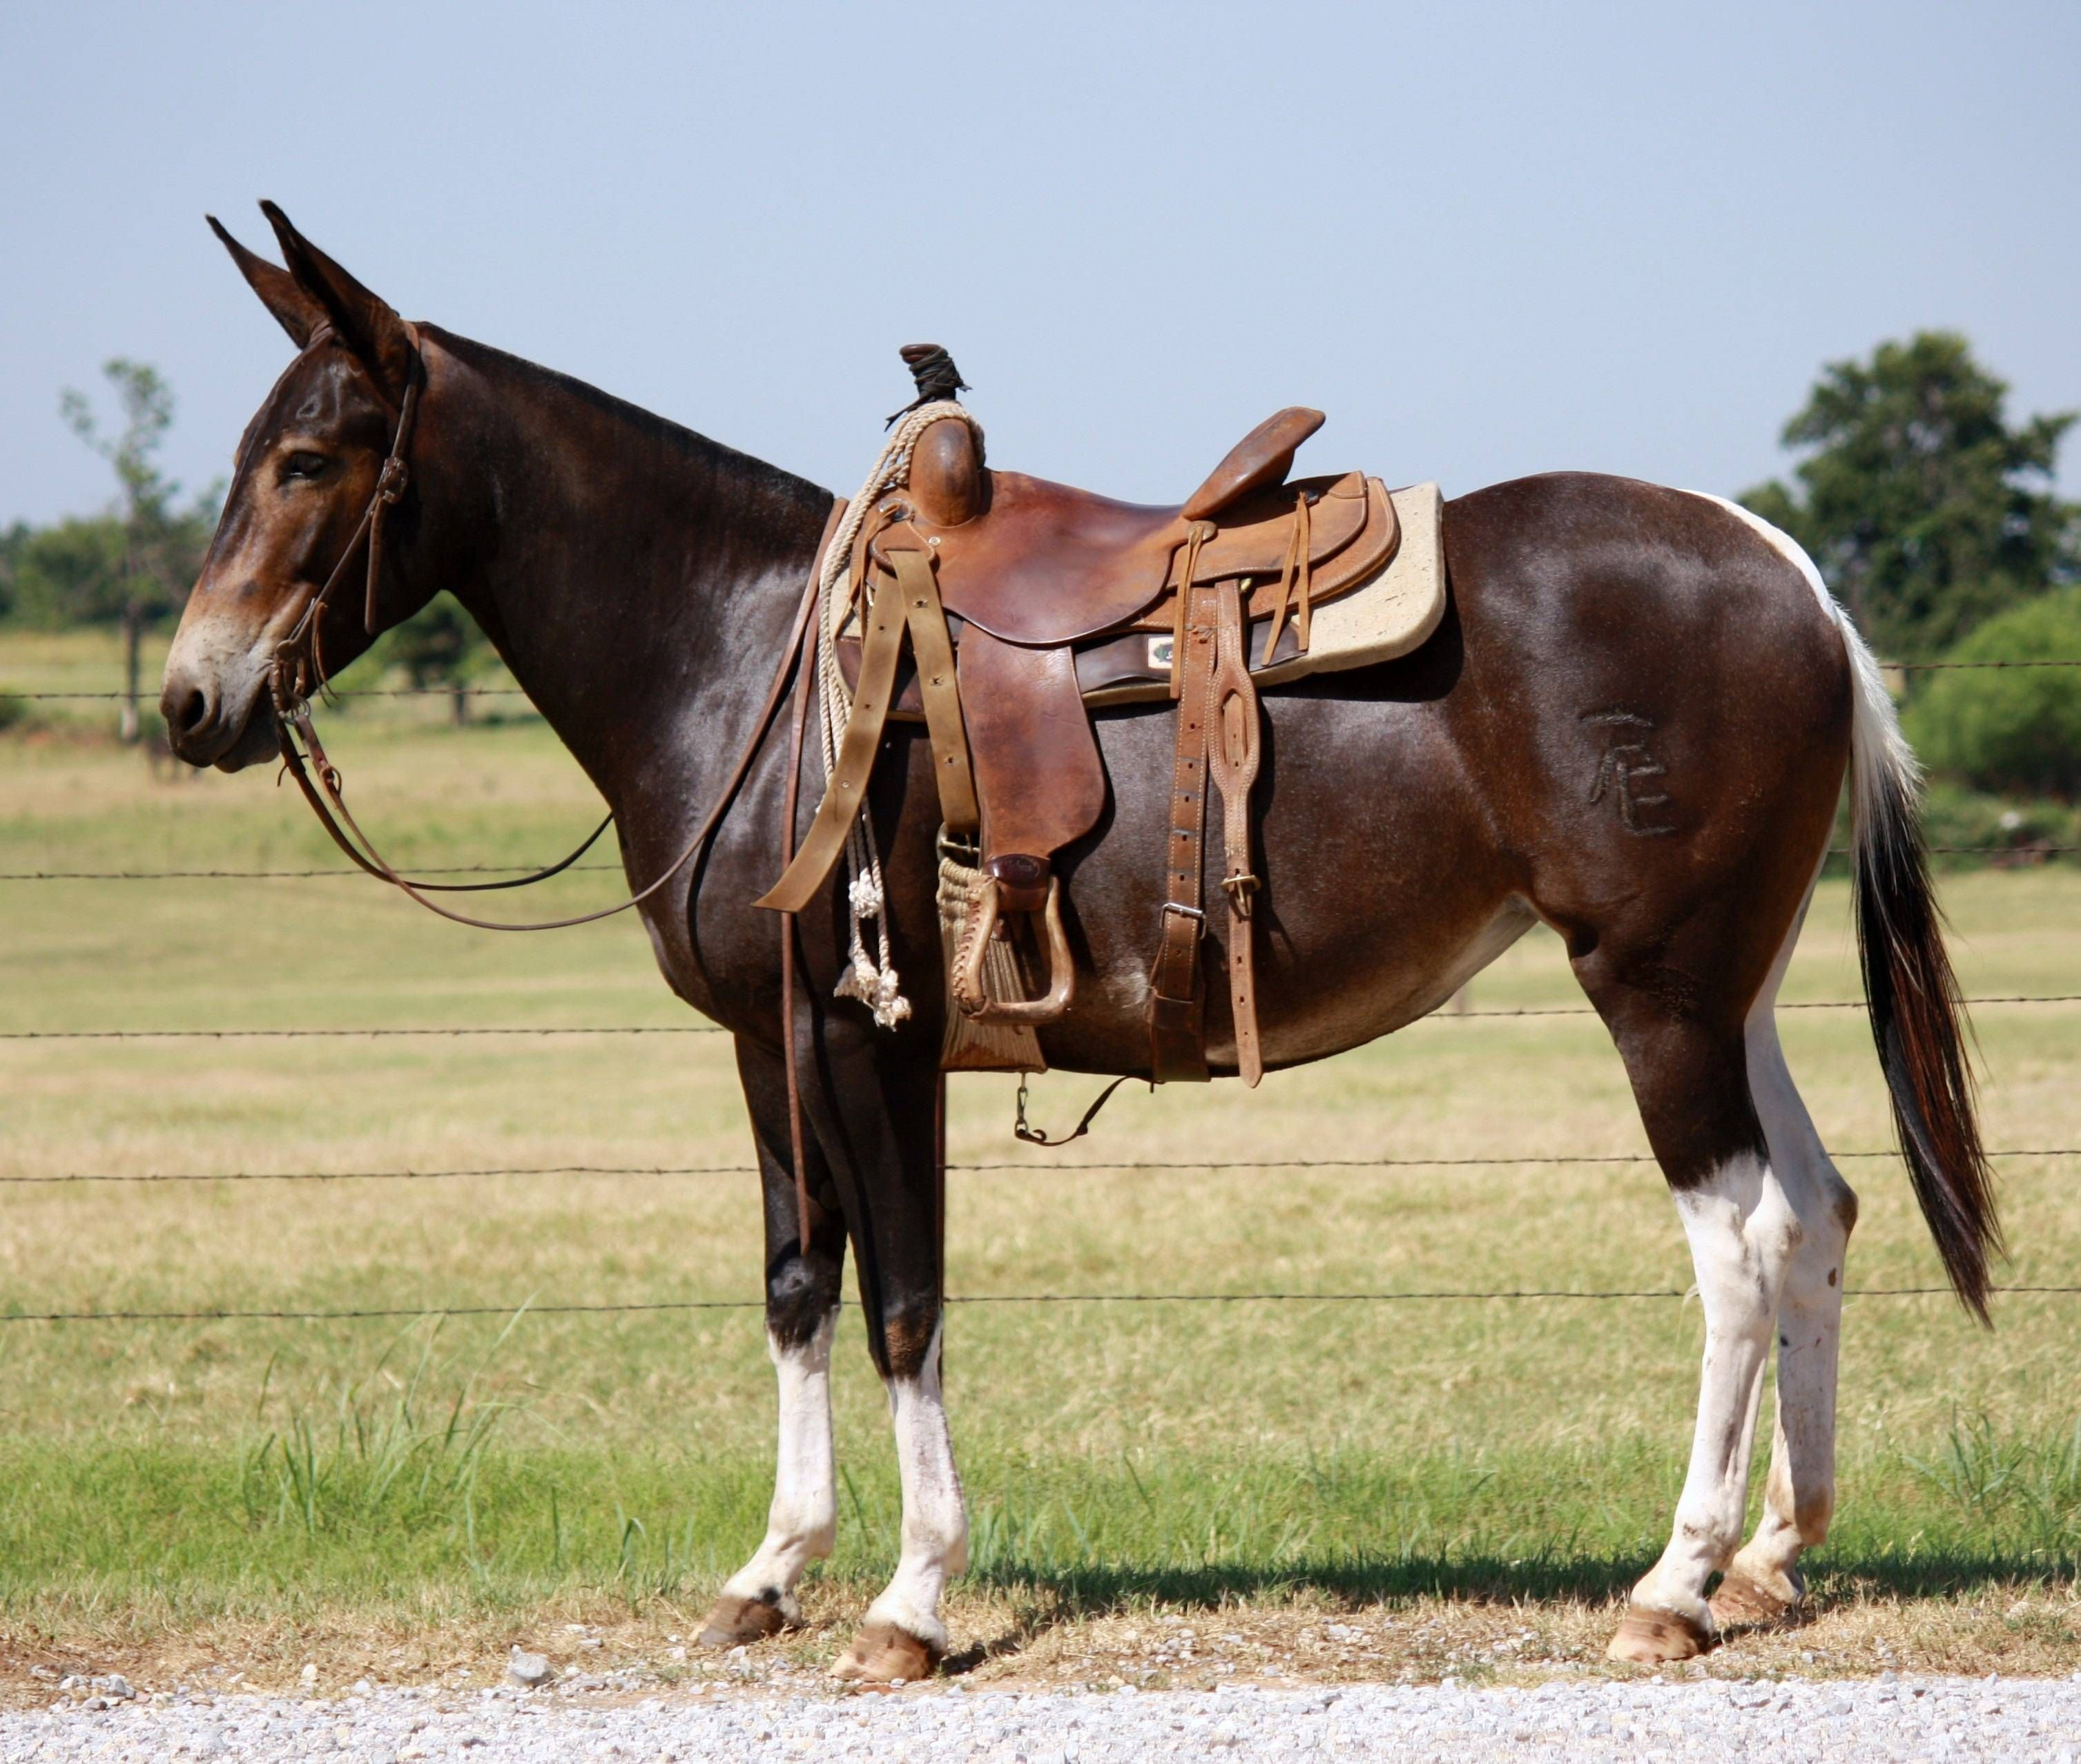 Riding Mules Horses For Sale Ranch Classifieds Mules Animal Horses Pretty Horses